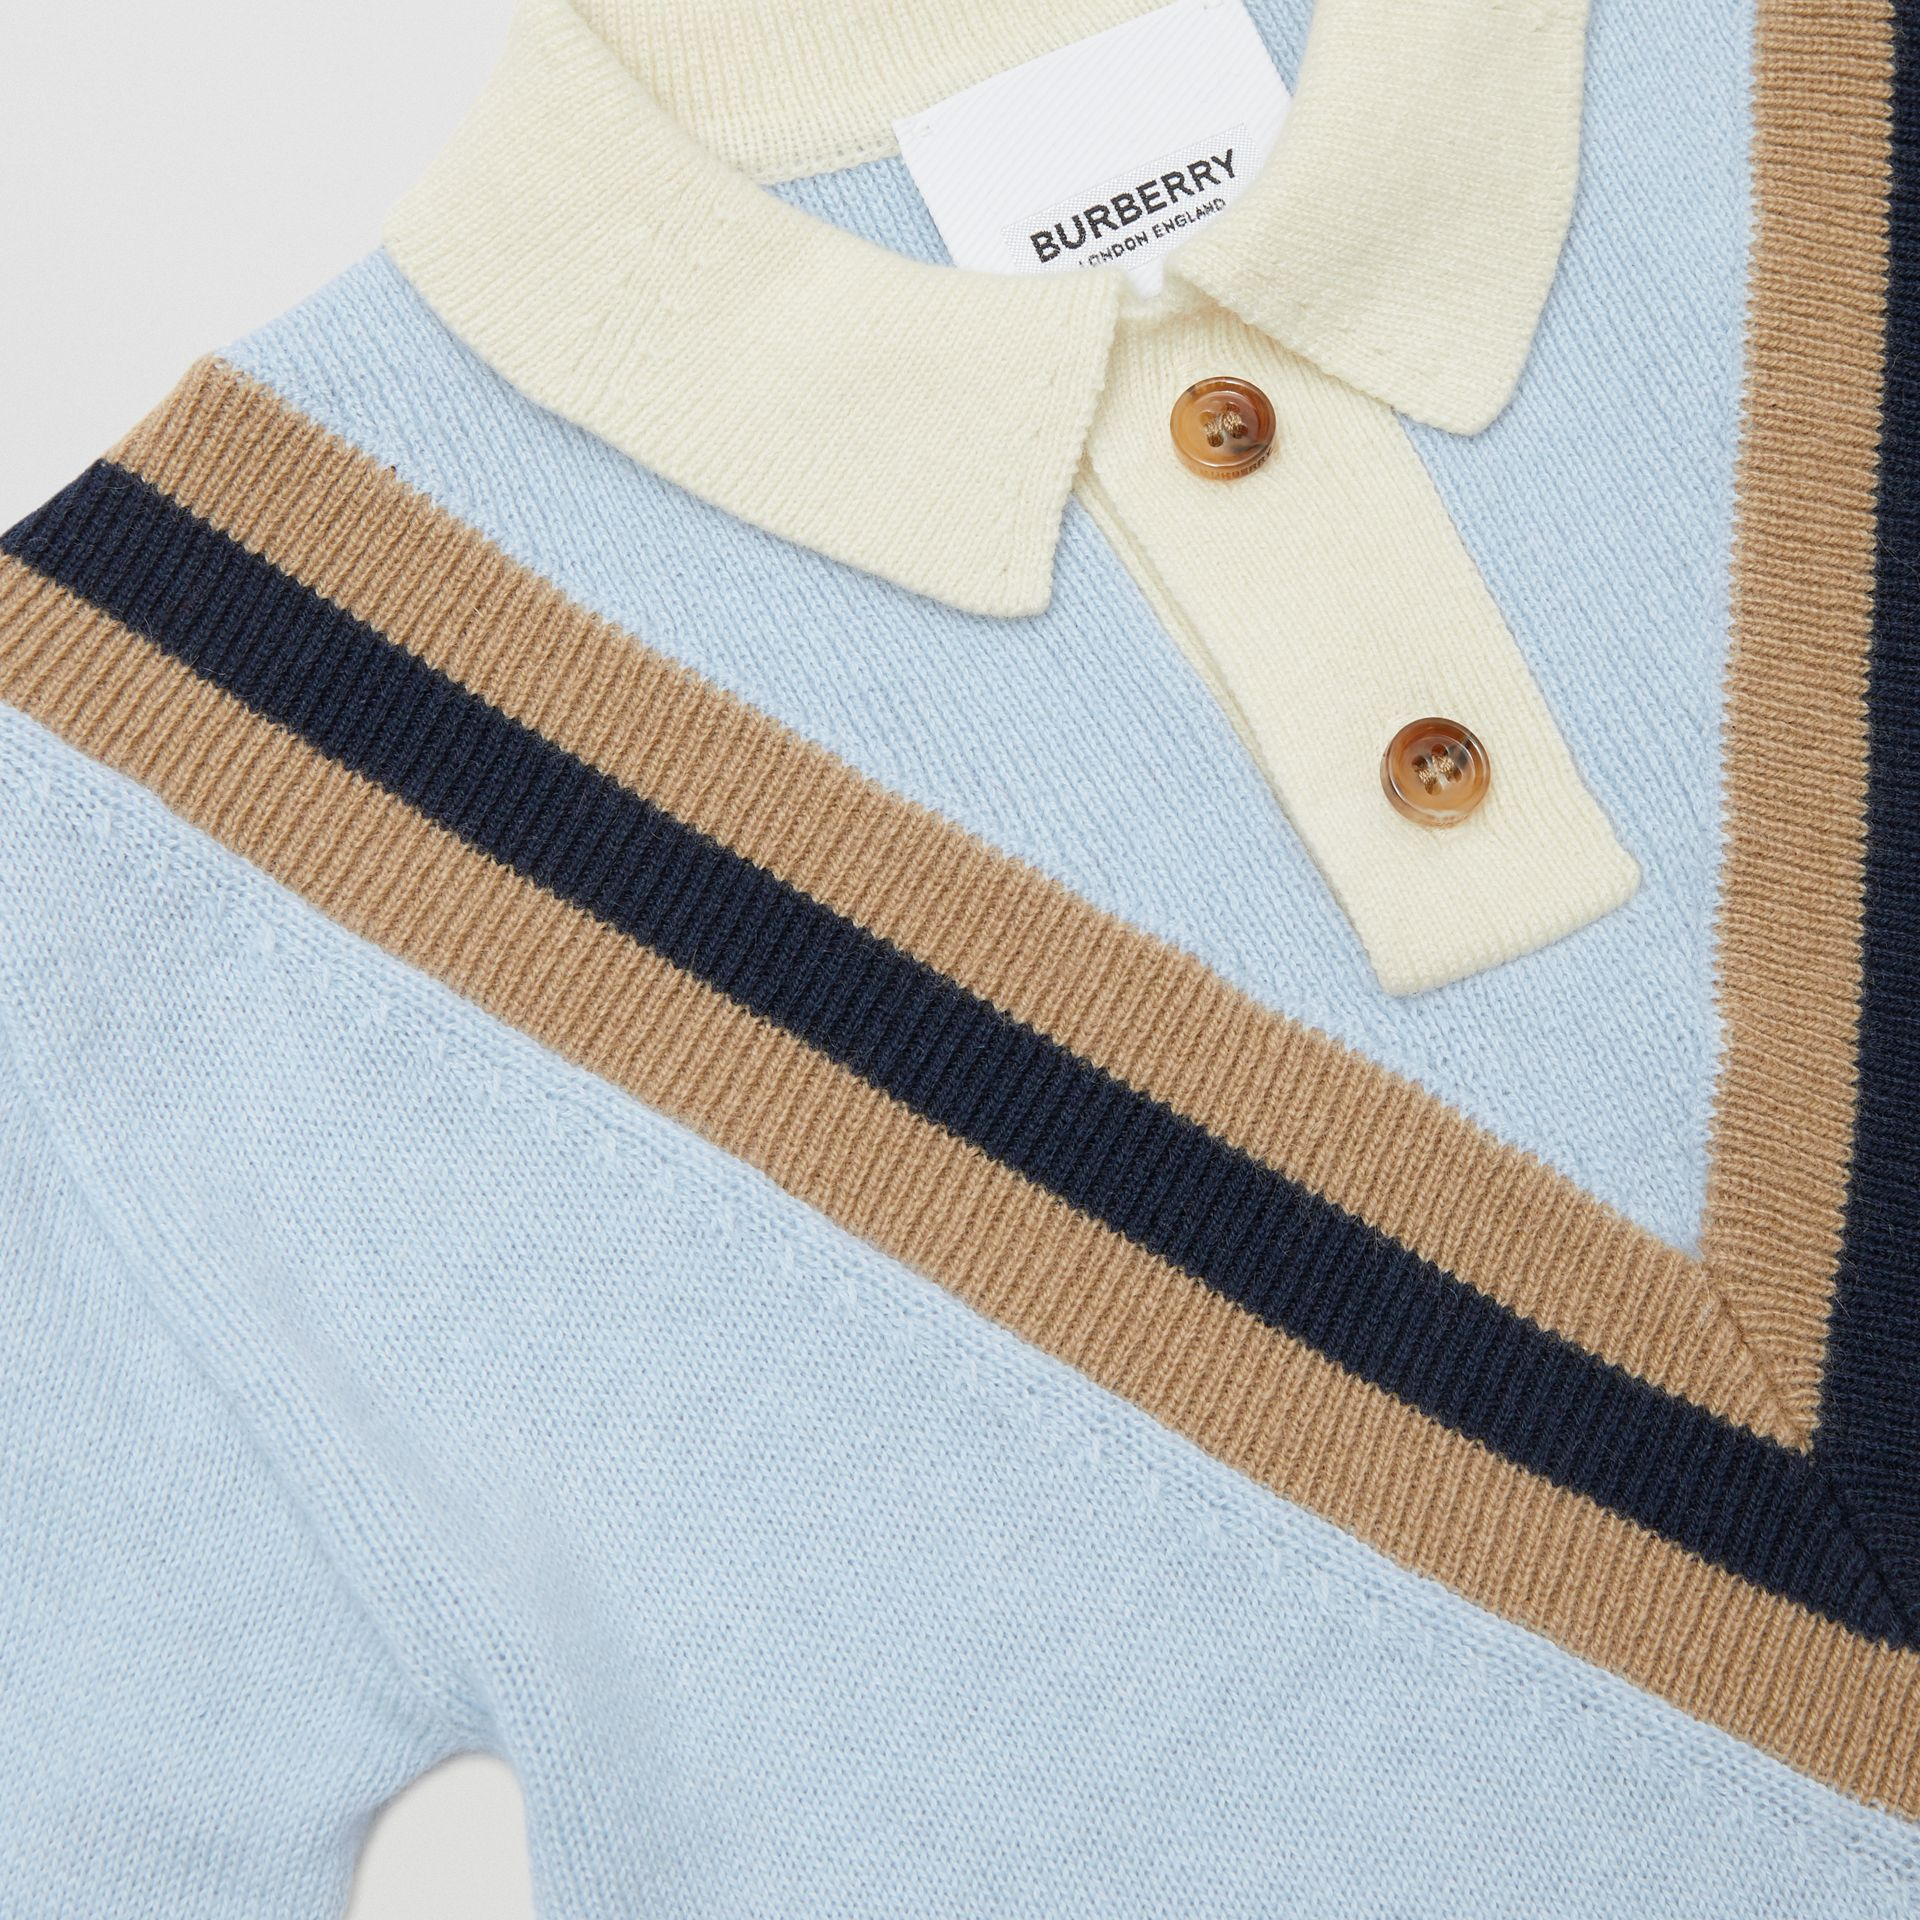 Long-sleeve Knit Cashmere Cotton Polo Shirt in Light Blue - Children | Burberry United States - gallery image 1